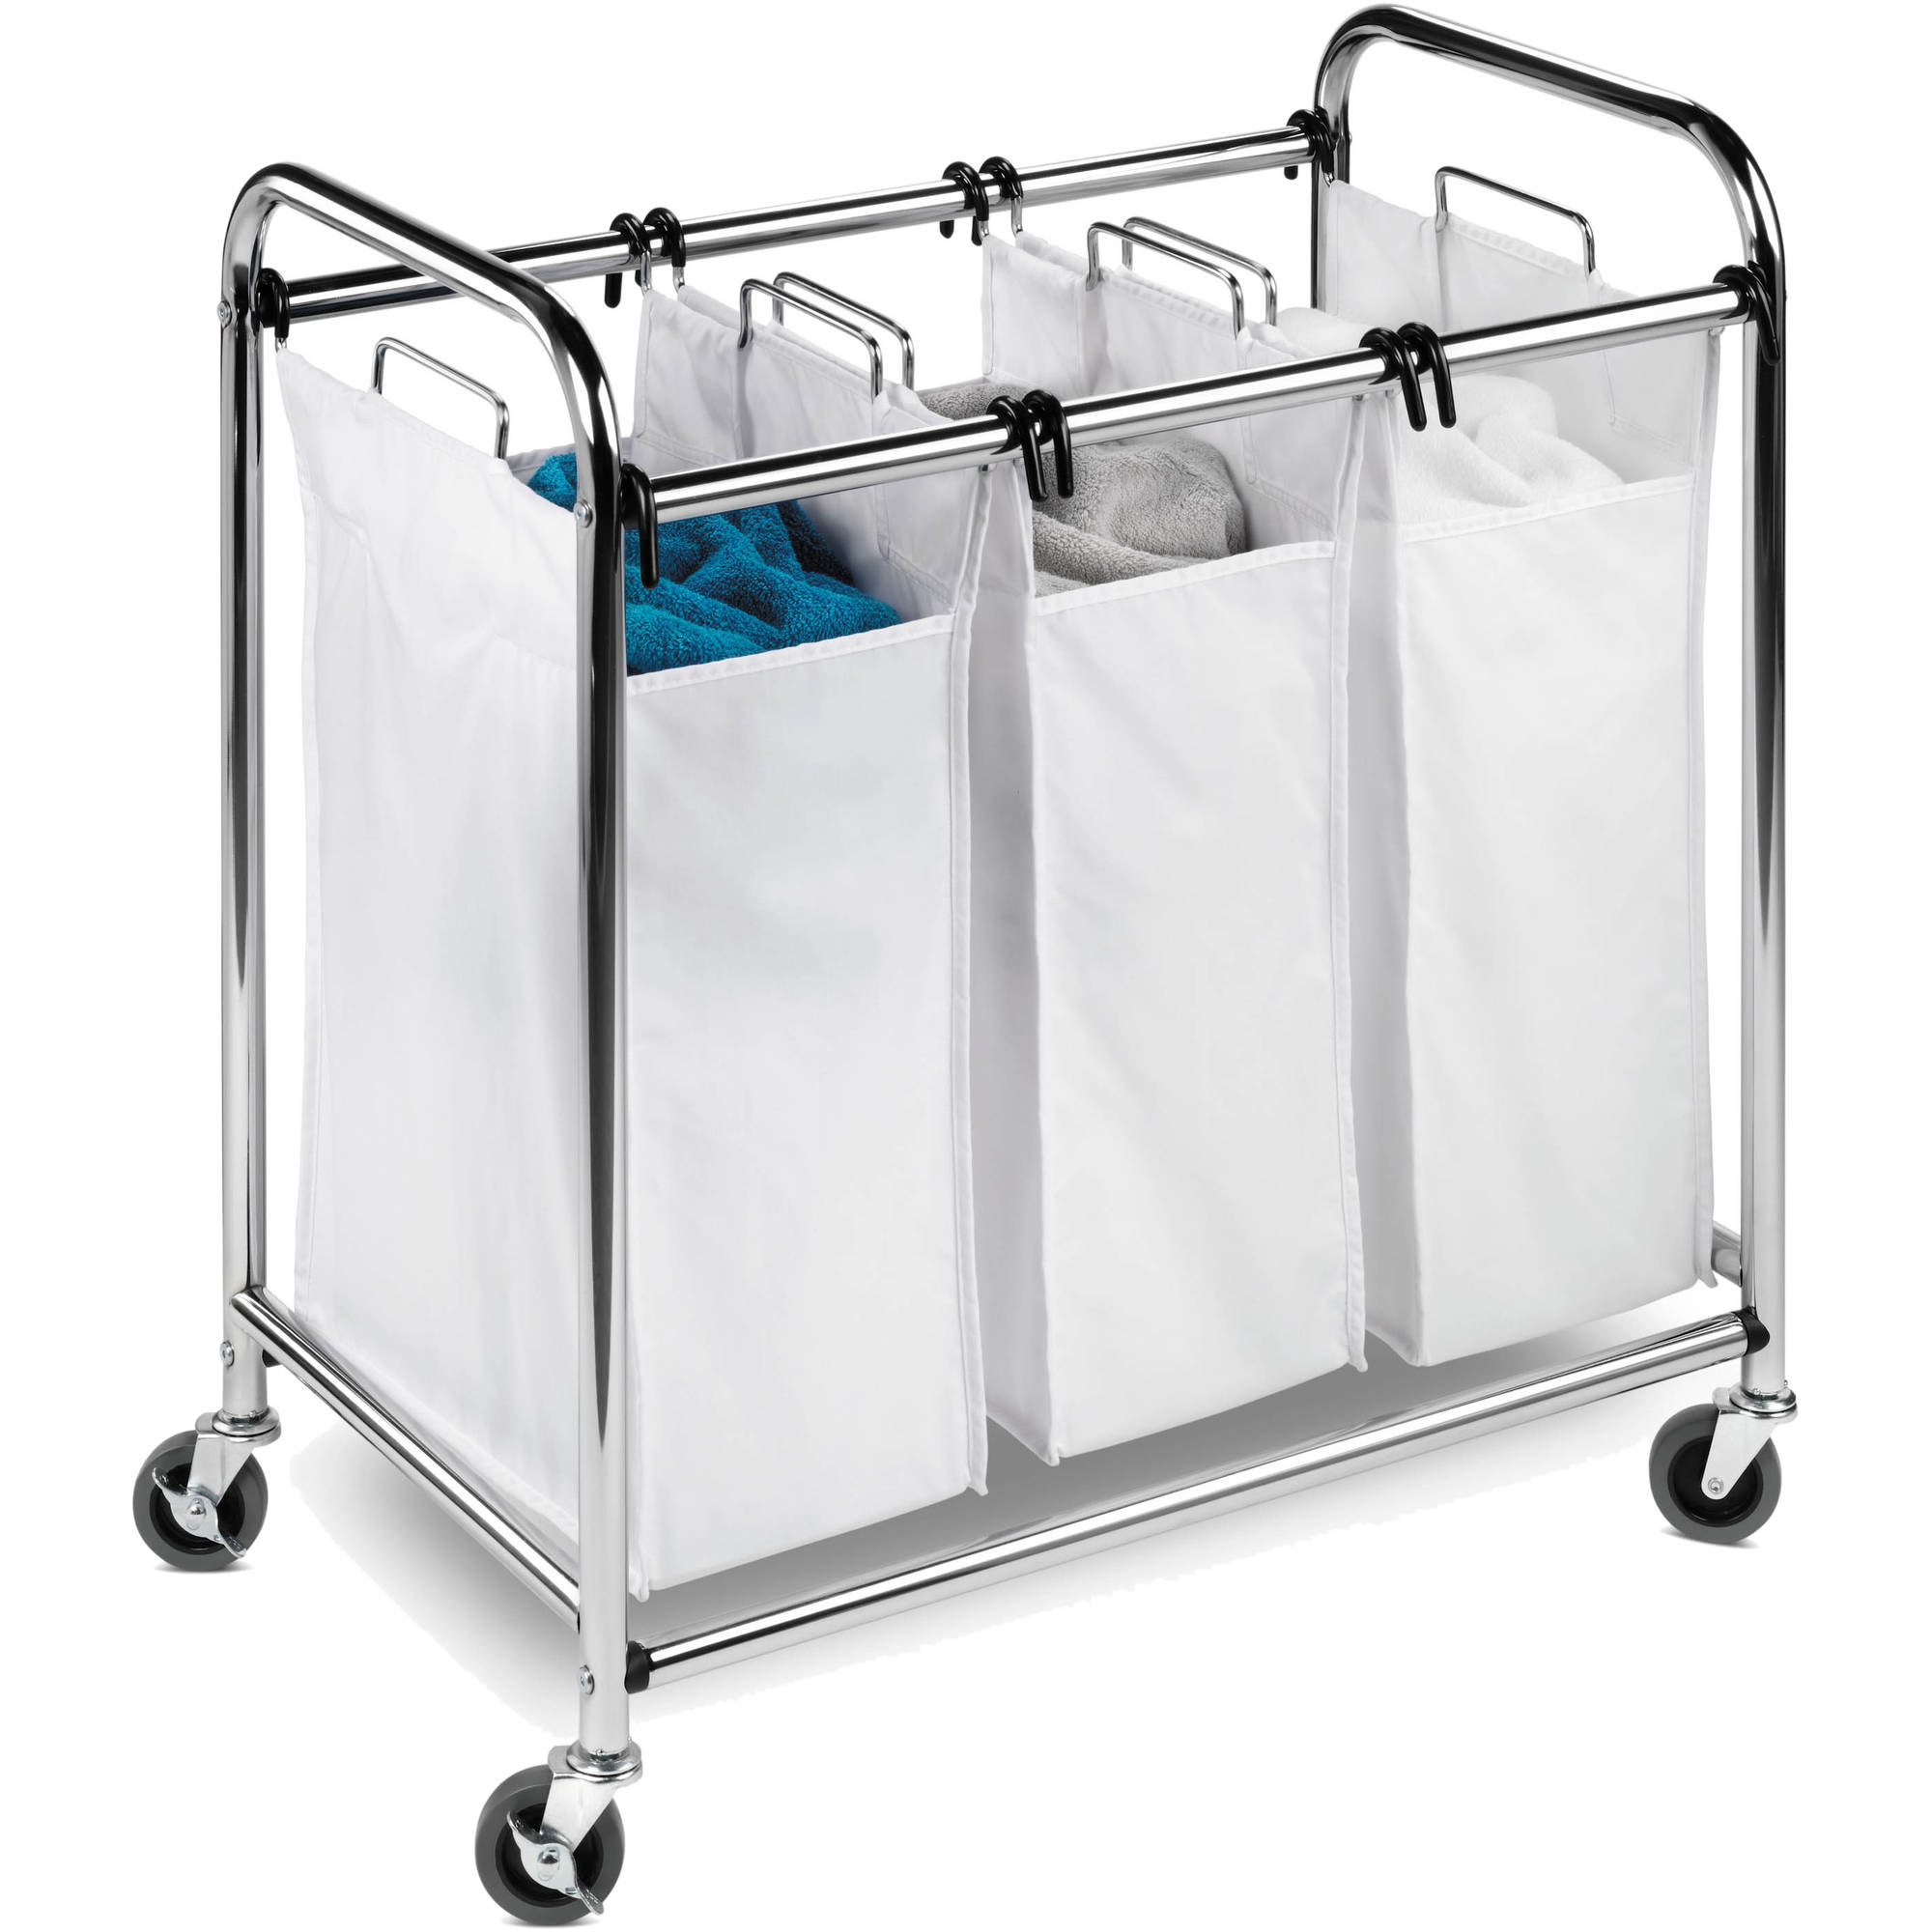 Honey-Can-Do Heavy-Duty 3-Section Sorter, Chrome